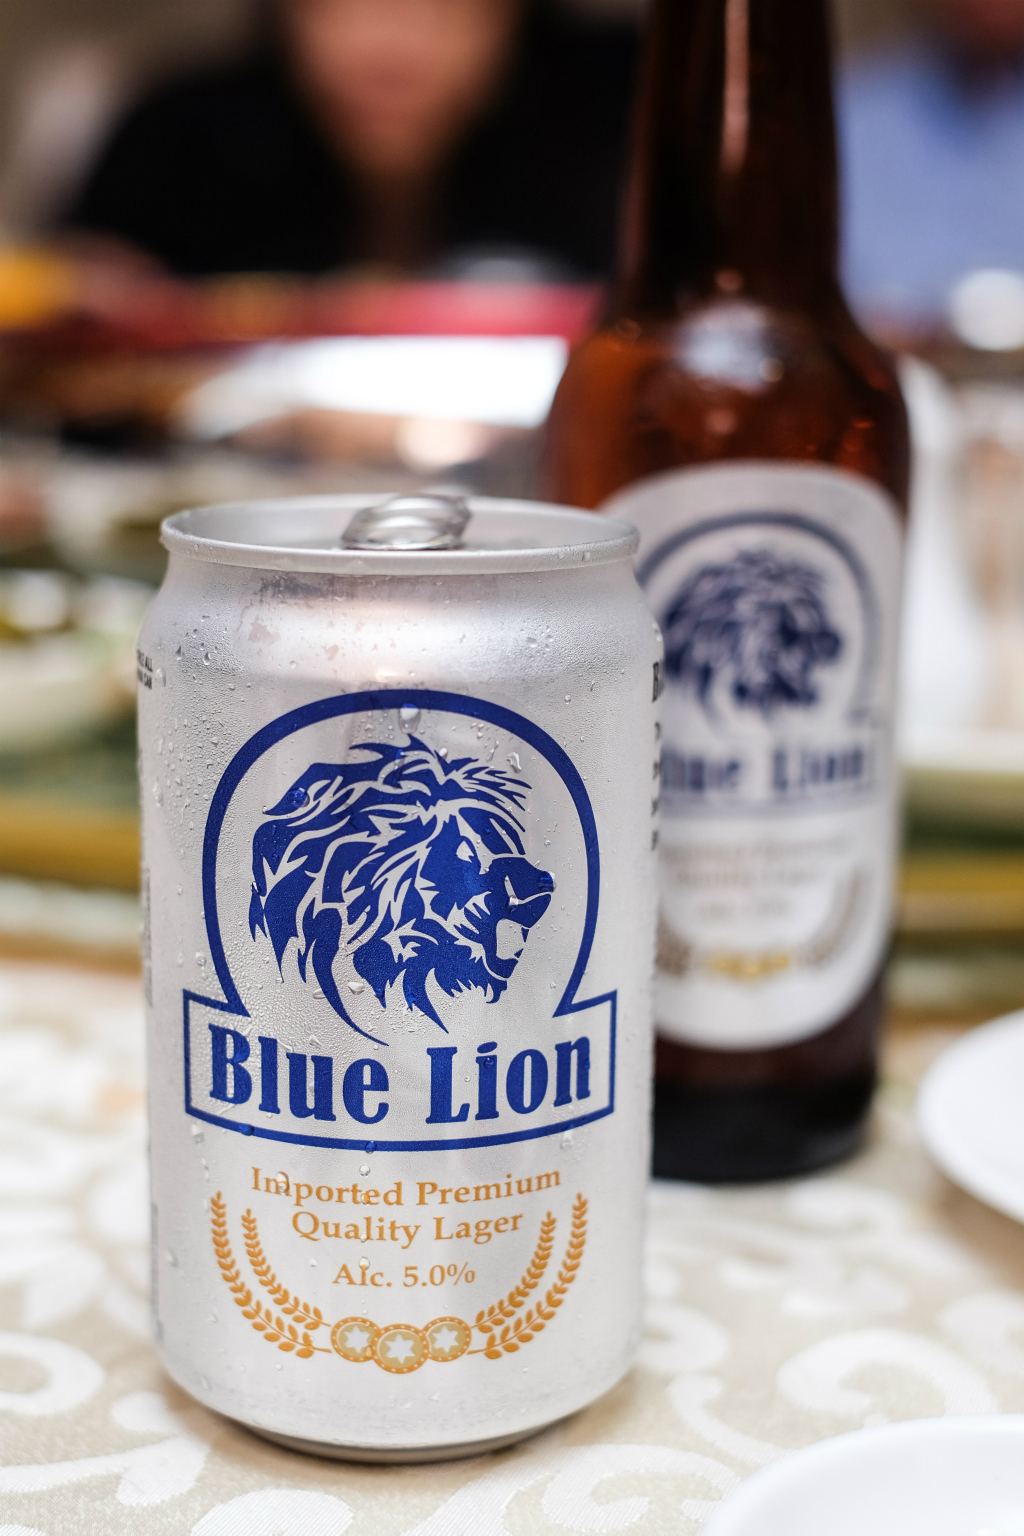 Blue Lion Beer Can and Bottle